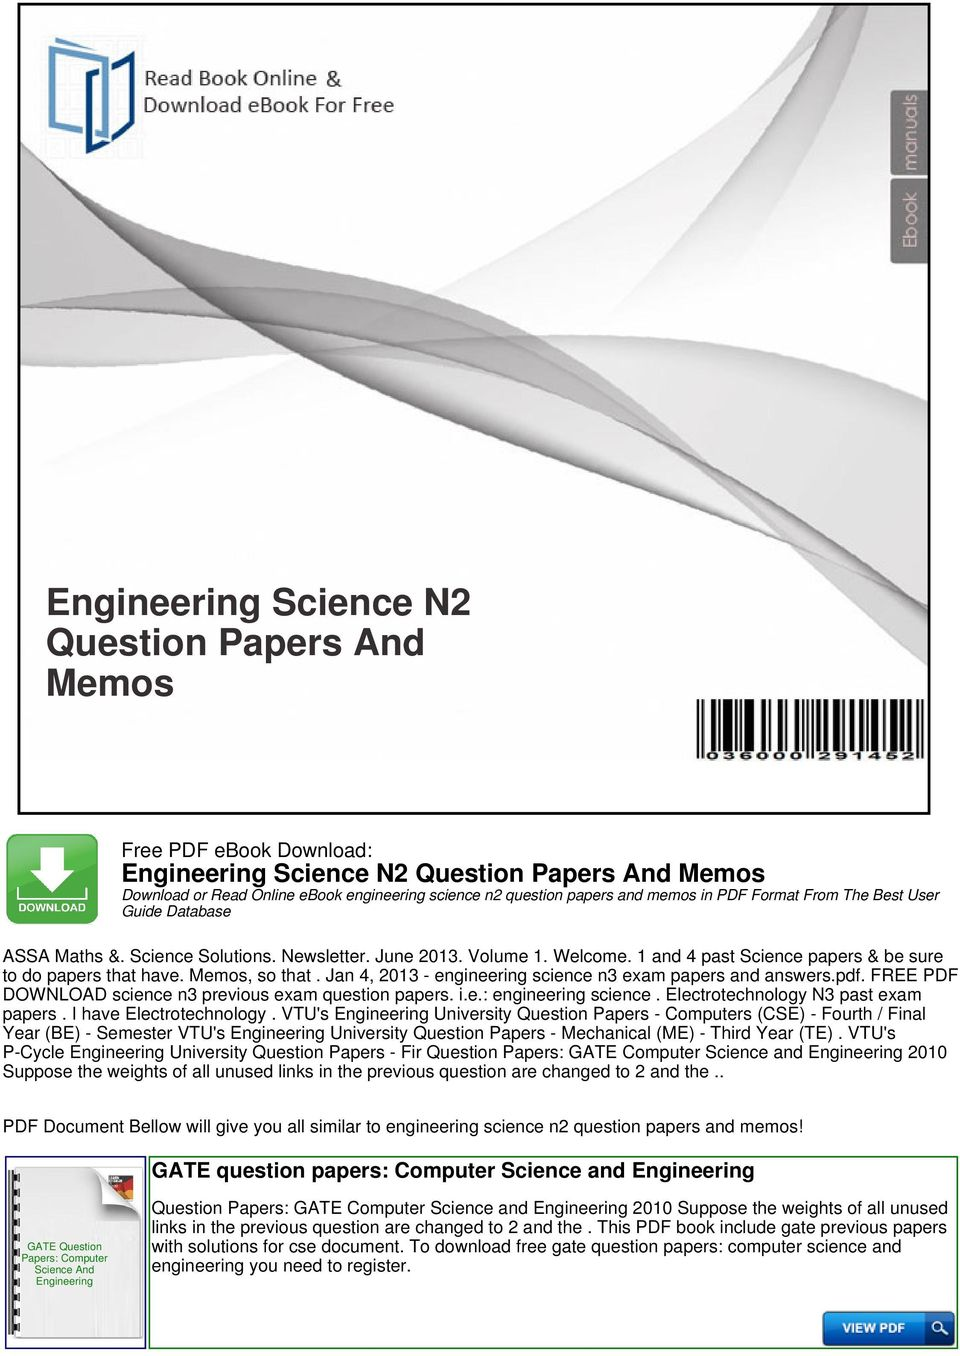 Engineering Science Pdf